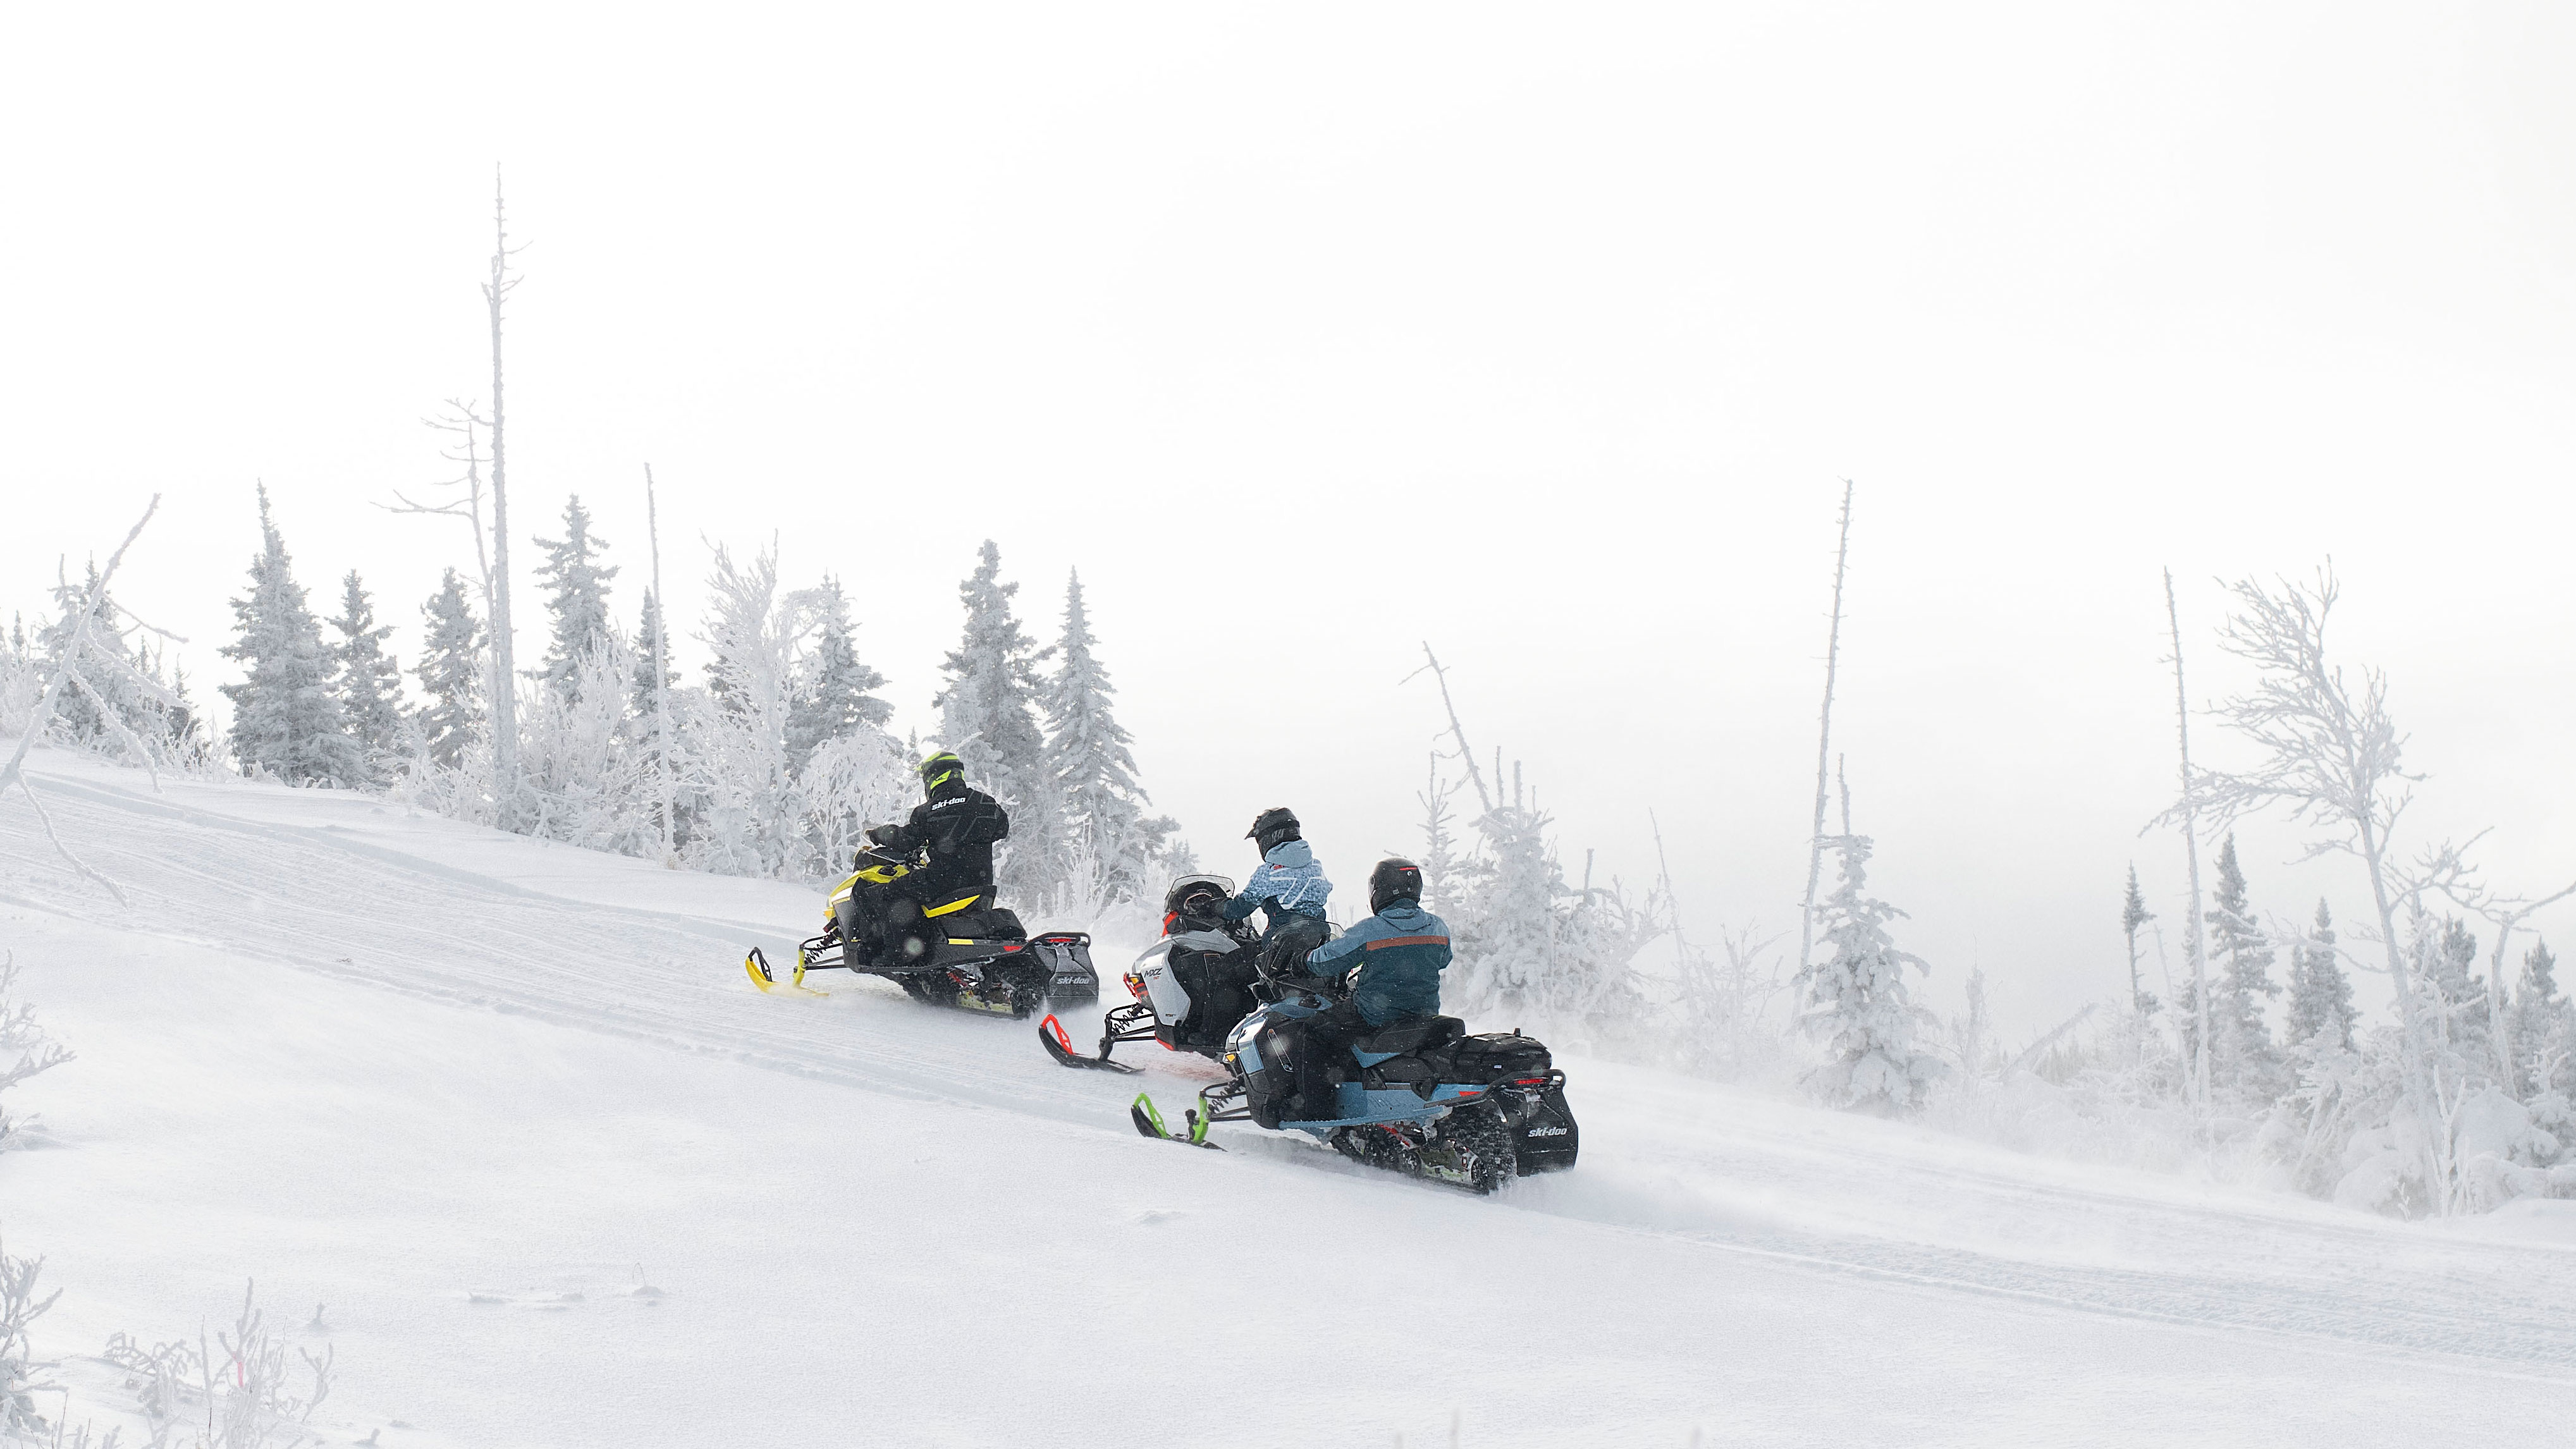 3 riders with the 2022 Ski-Doo Lineup